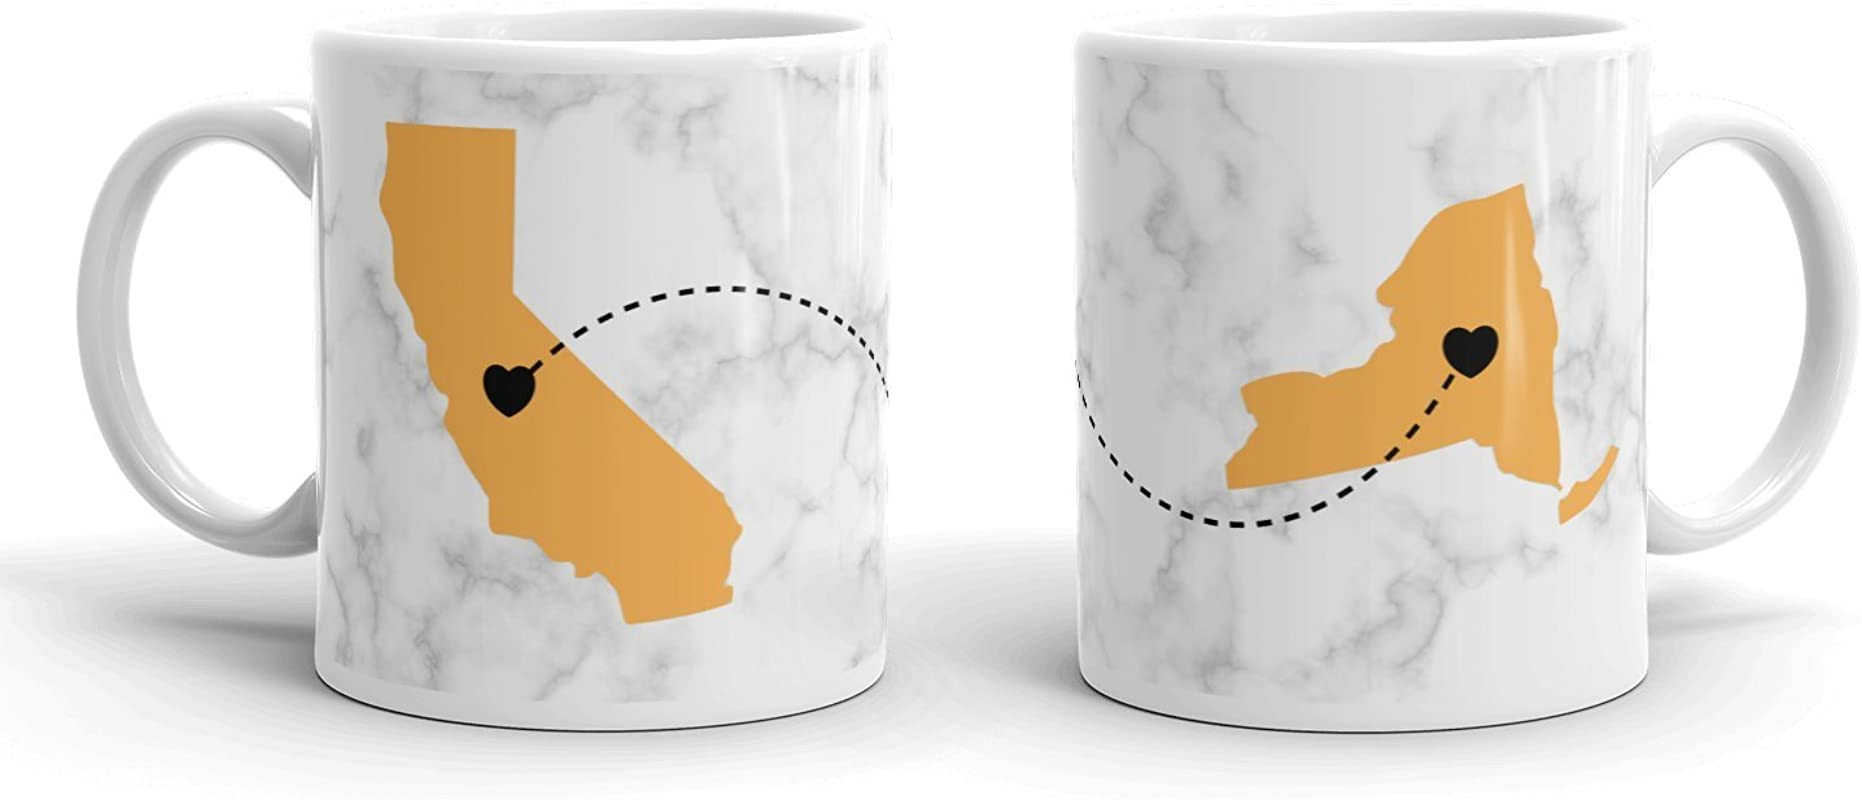 Best Friend Long Distance Anywhere Personalized Coffee Mug Gold On Marble Between Any US States Any Provinces Any Countries Share Your Love For Each Other With This Awesome Customized Gift